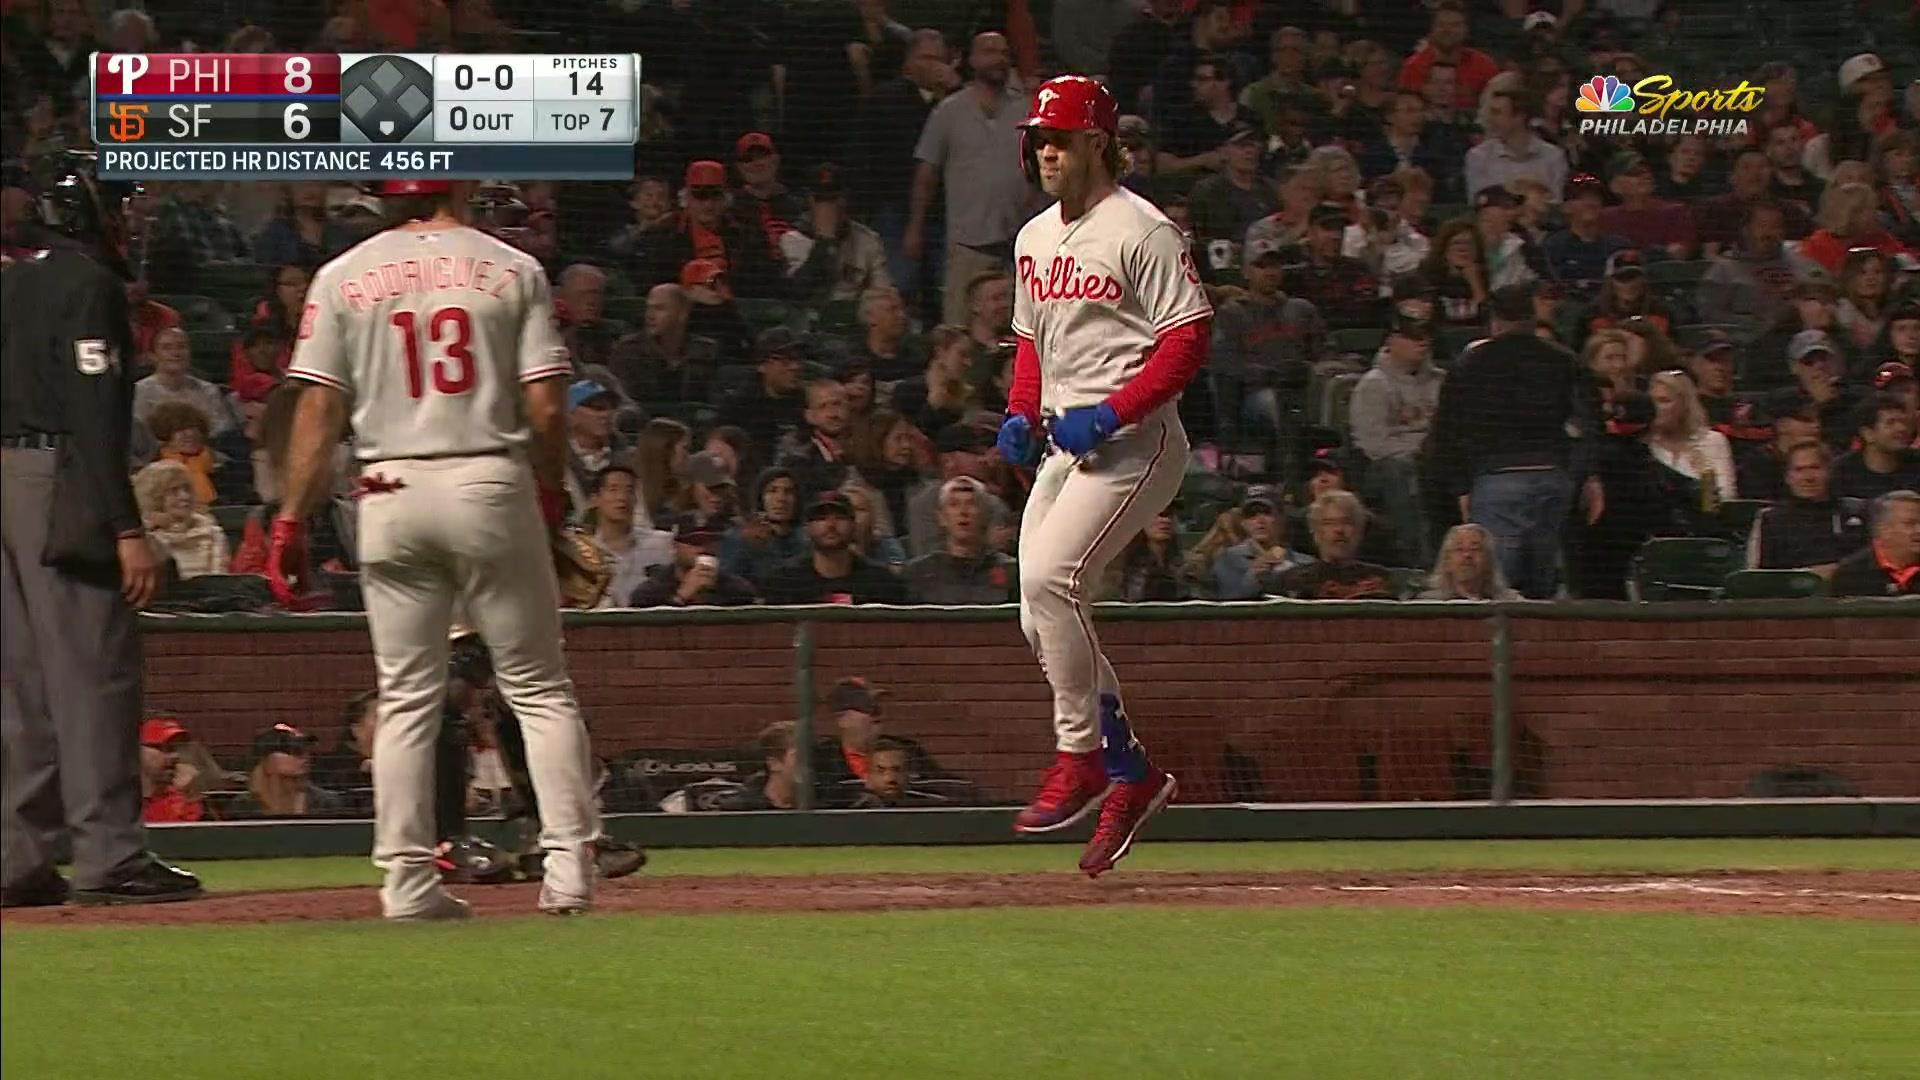 A pair of giant home runs give Phillies much-needed win | NBC Sports